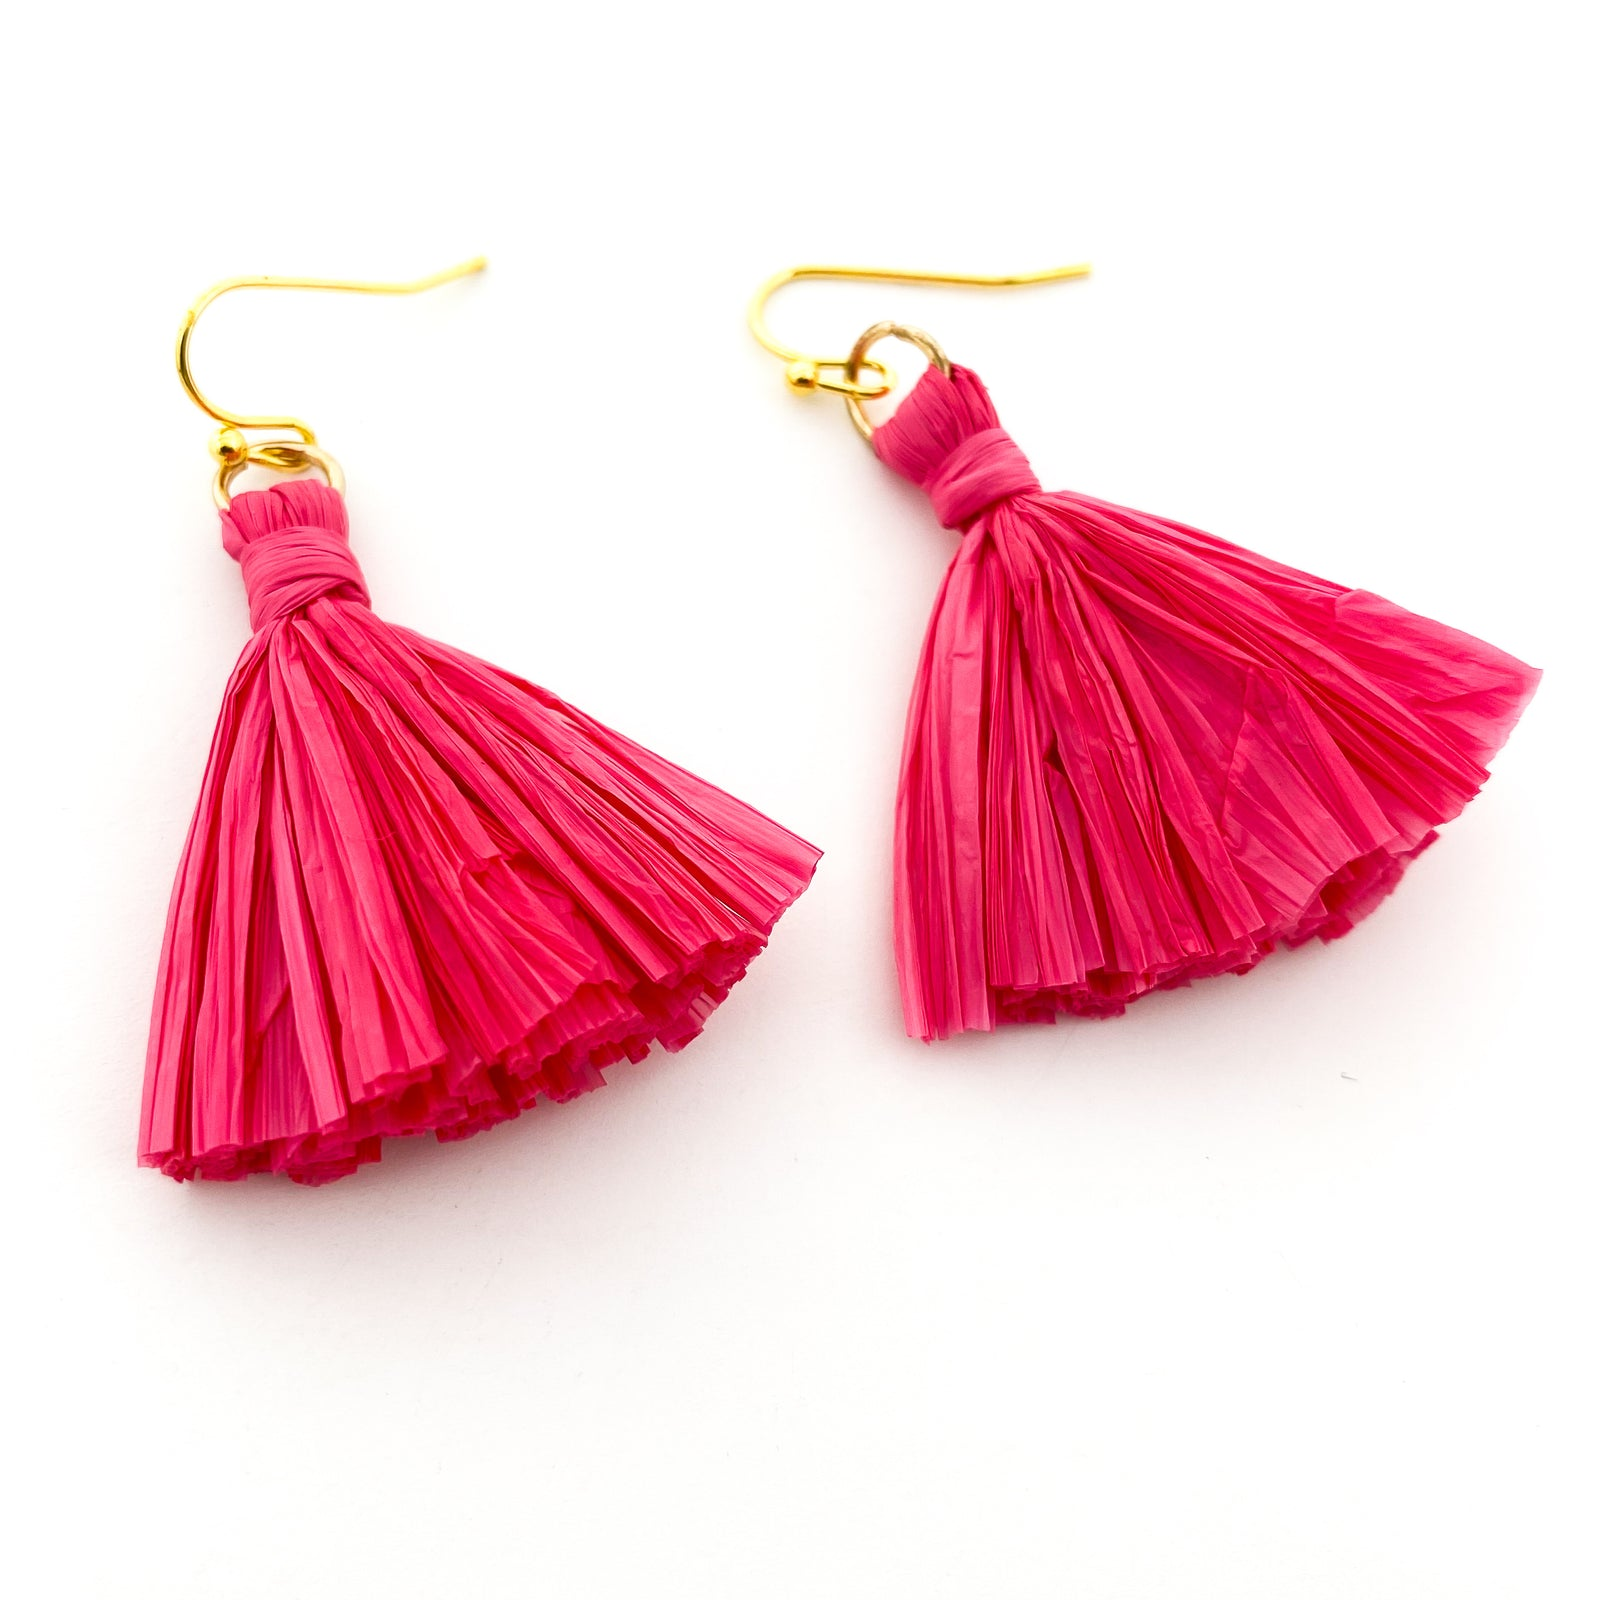 RAFFIA PAPER TASSLE EARRINGS | GOLD | STYLE OPTIONS